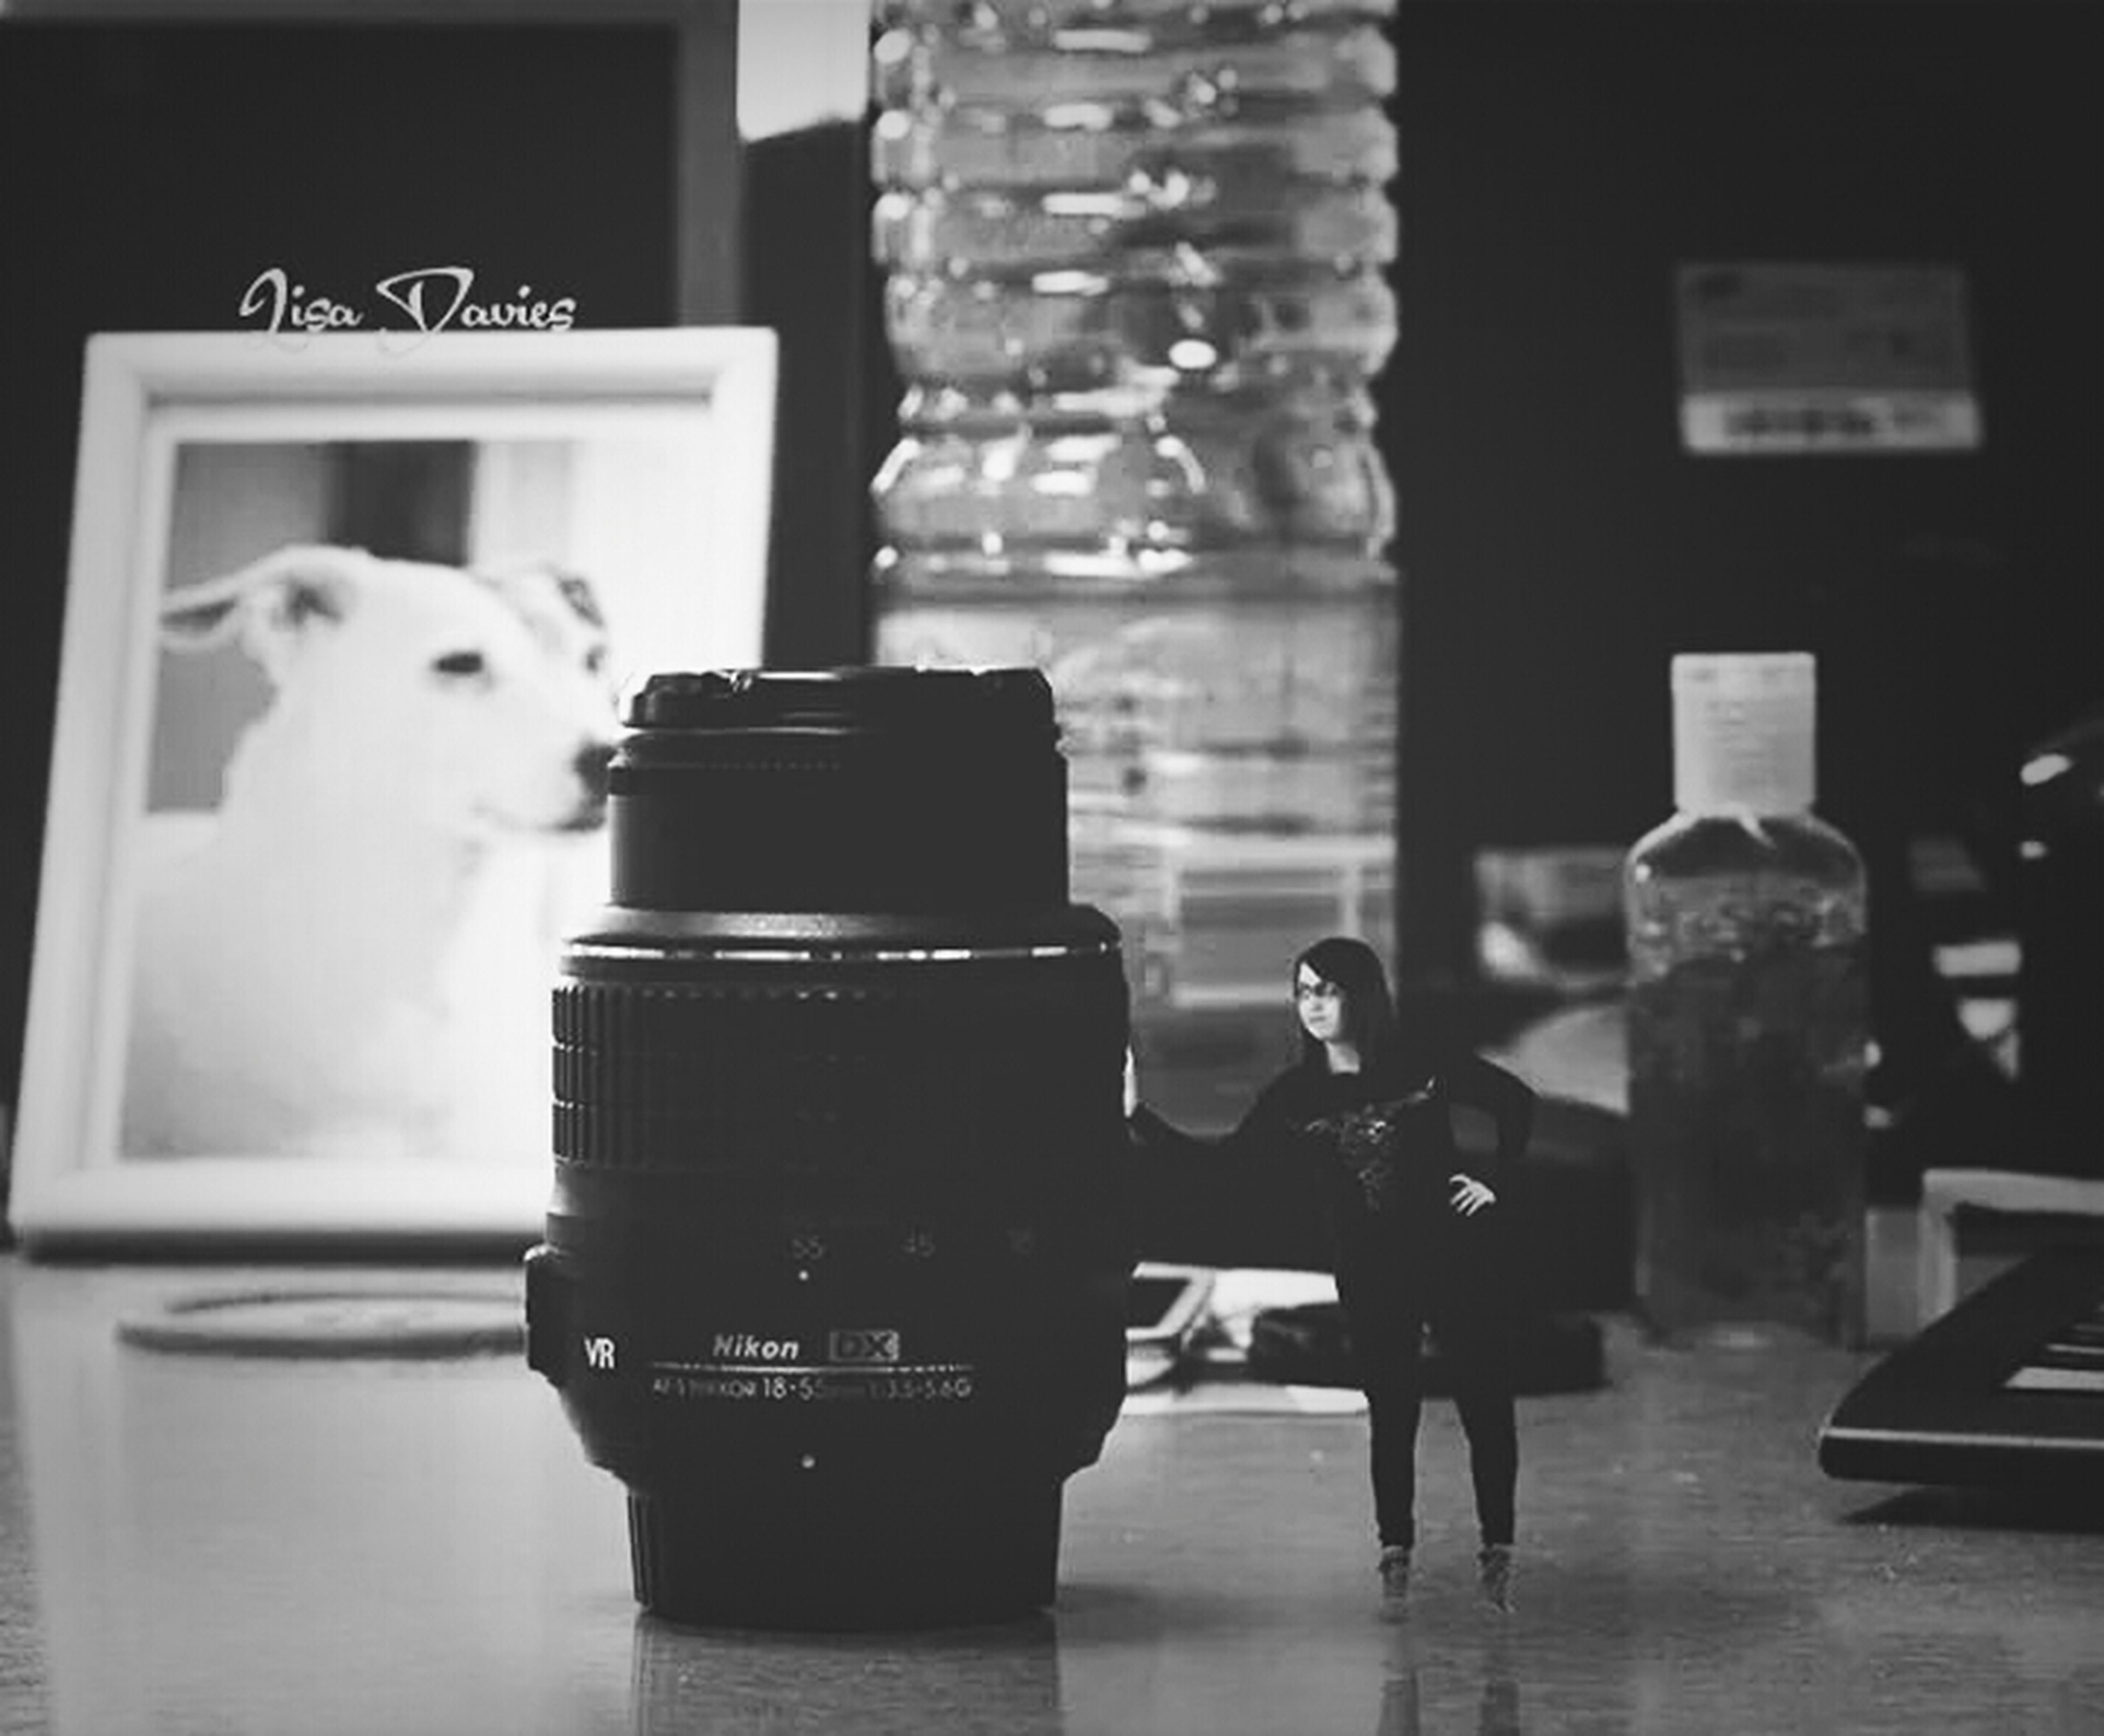 indoors, table, communication, close-up, reflection, focus on foreground, still life, text, drink, western script, technology, photography themes, selective focus, food and drink, no people, camera - photographic equipment, refreshment, home interior, bottle, glass - material